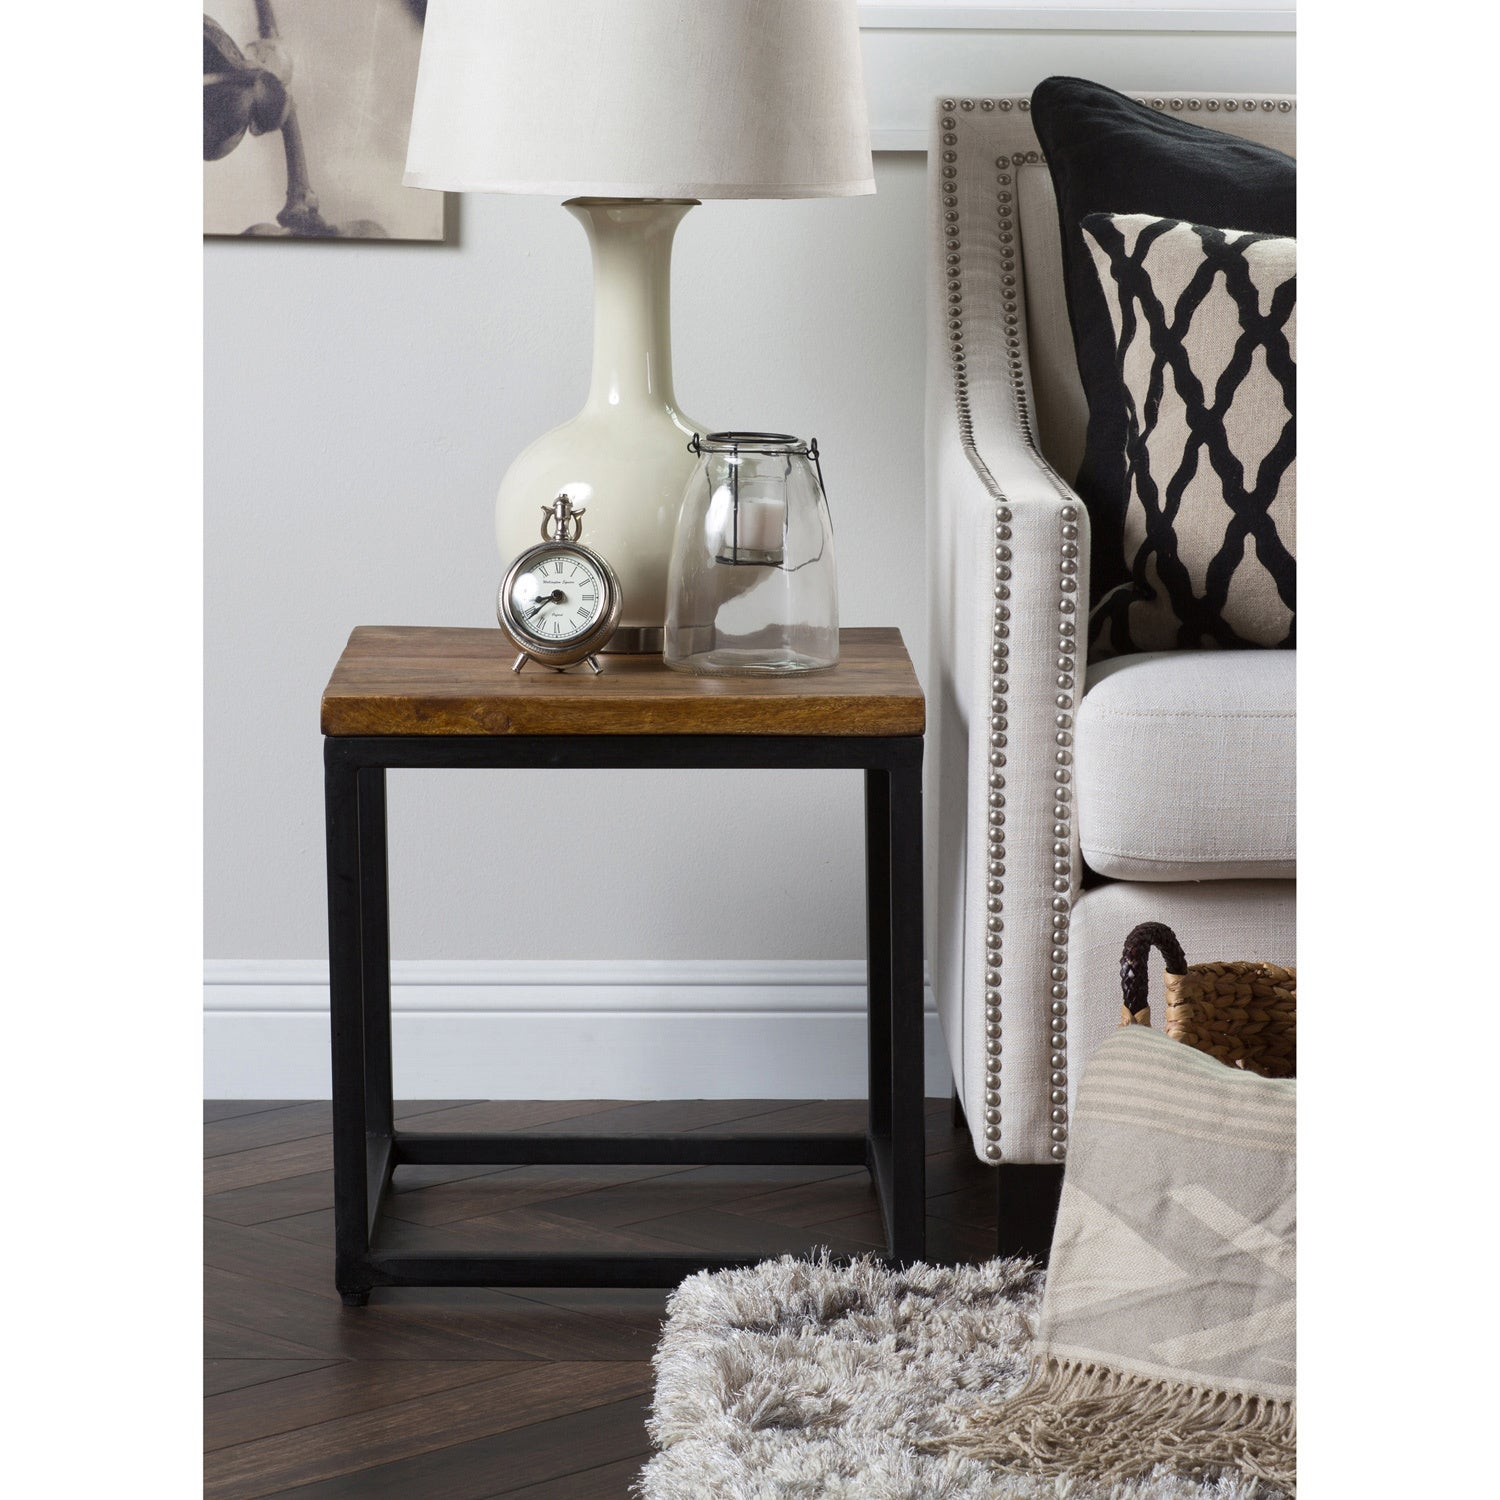 Shop Paris Natural Wood And Iron Inch Square Side Table By Kosas - 46 inch square coffee table